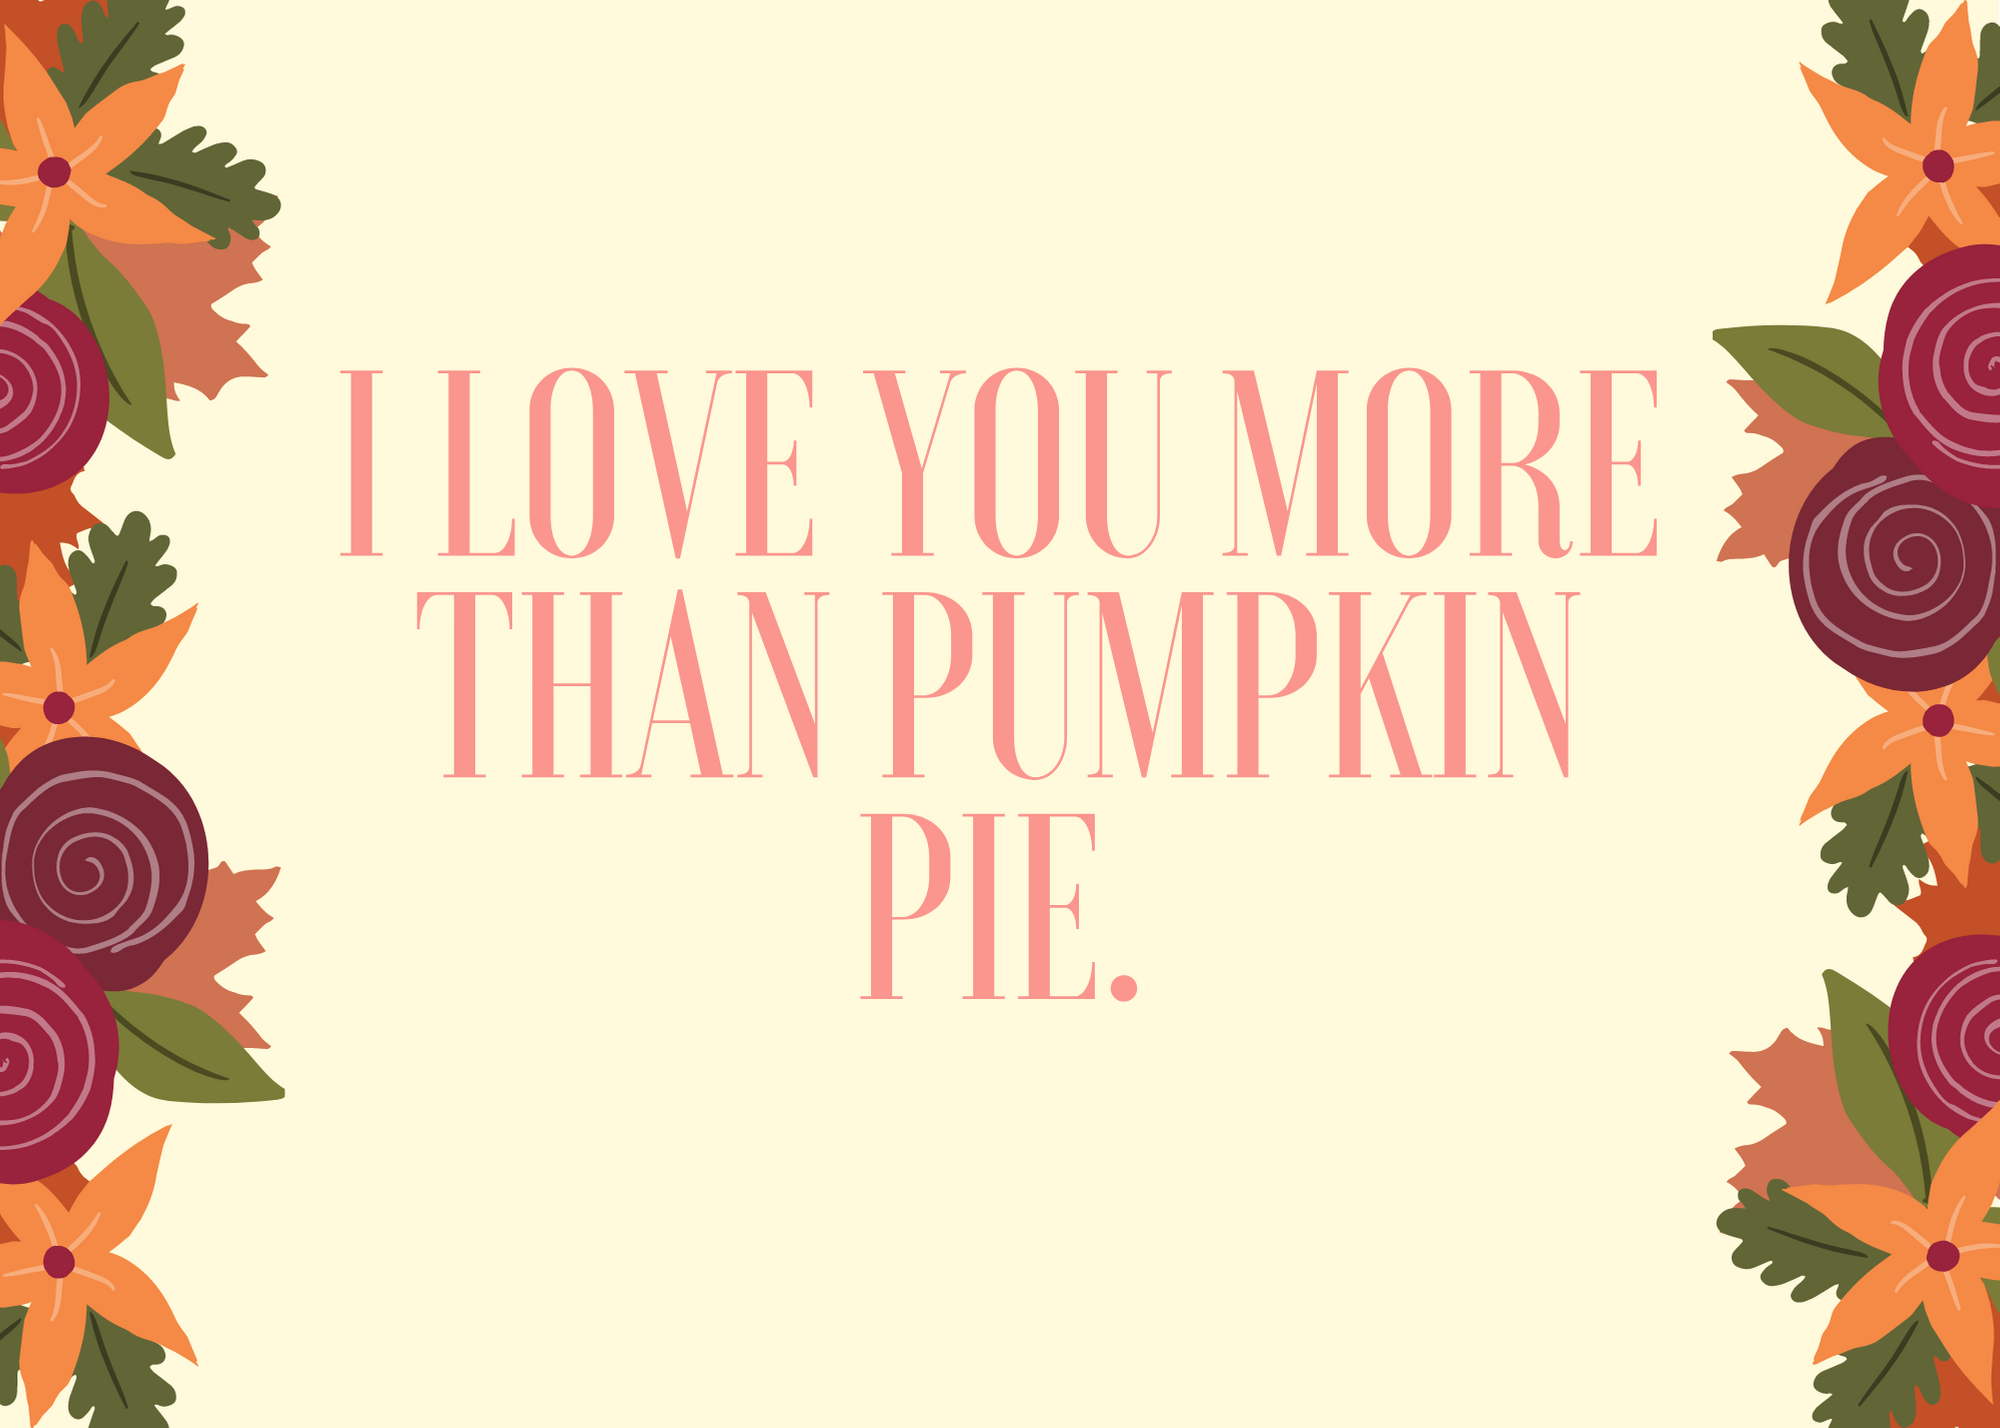 Funny Fall Instagram Caption About Pumpkin Pie